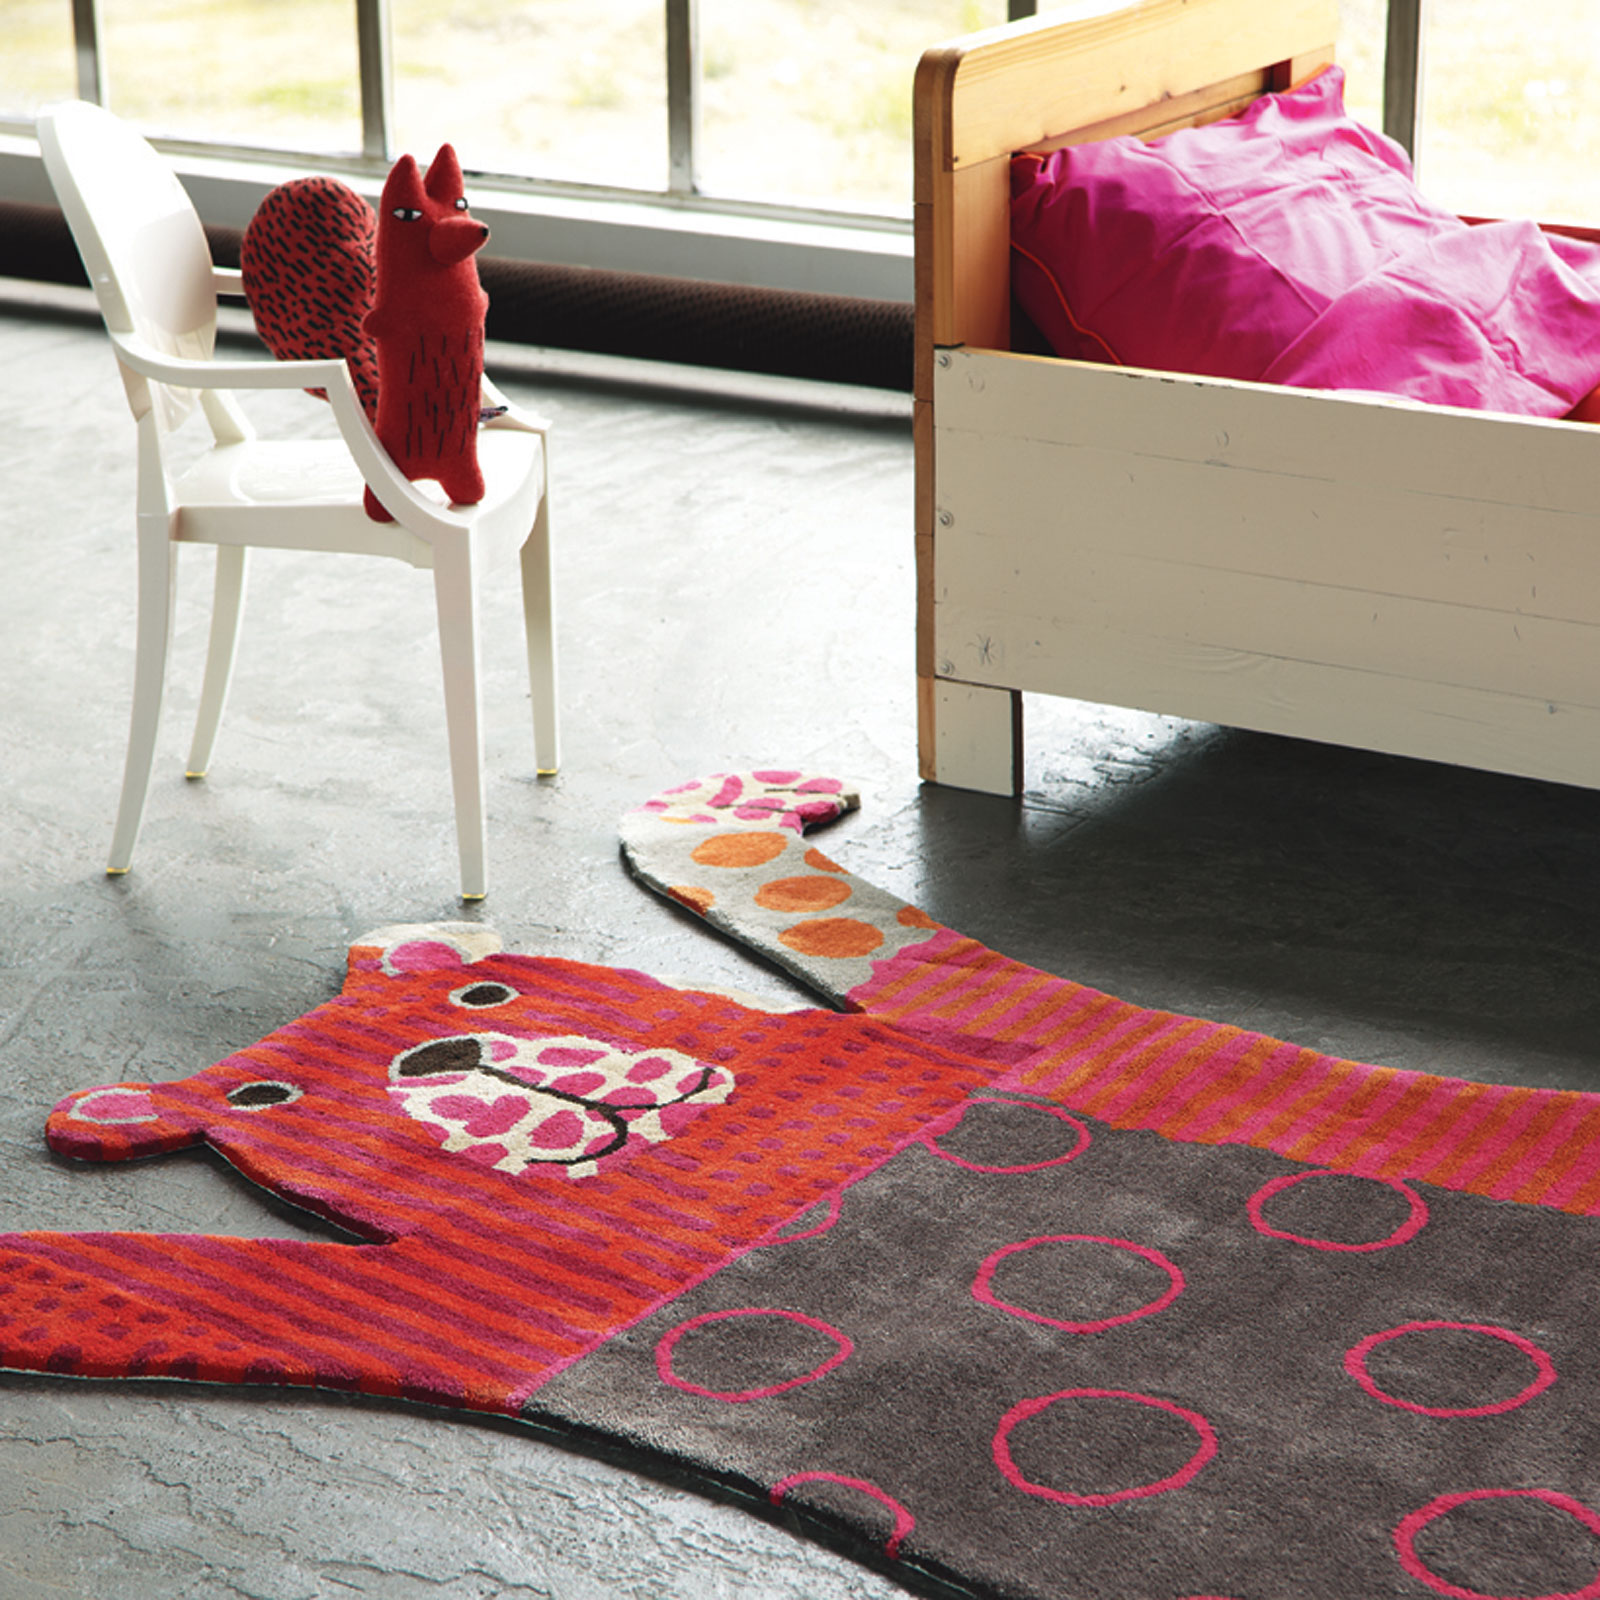 Xian Bear 41000 Kids Rugs by Brink and Campman